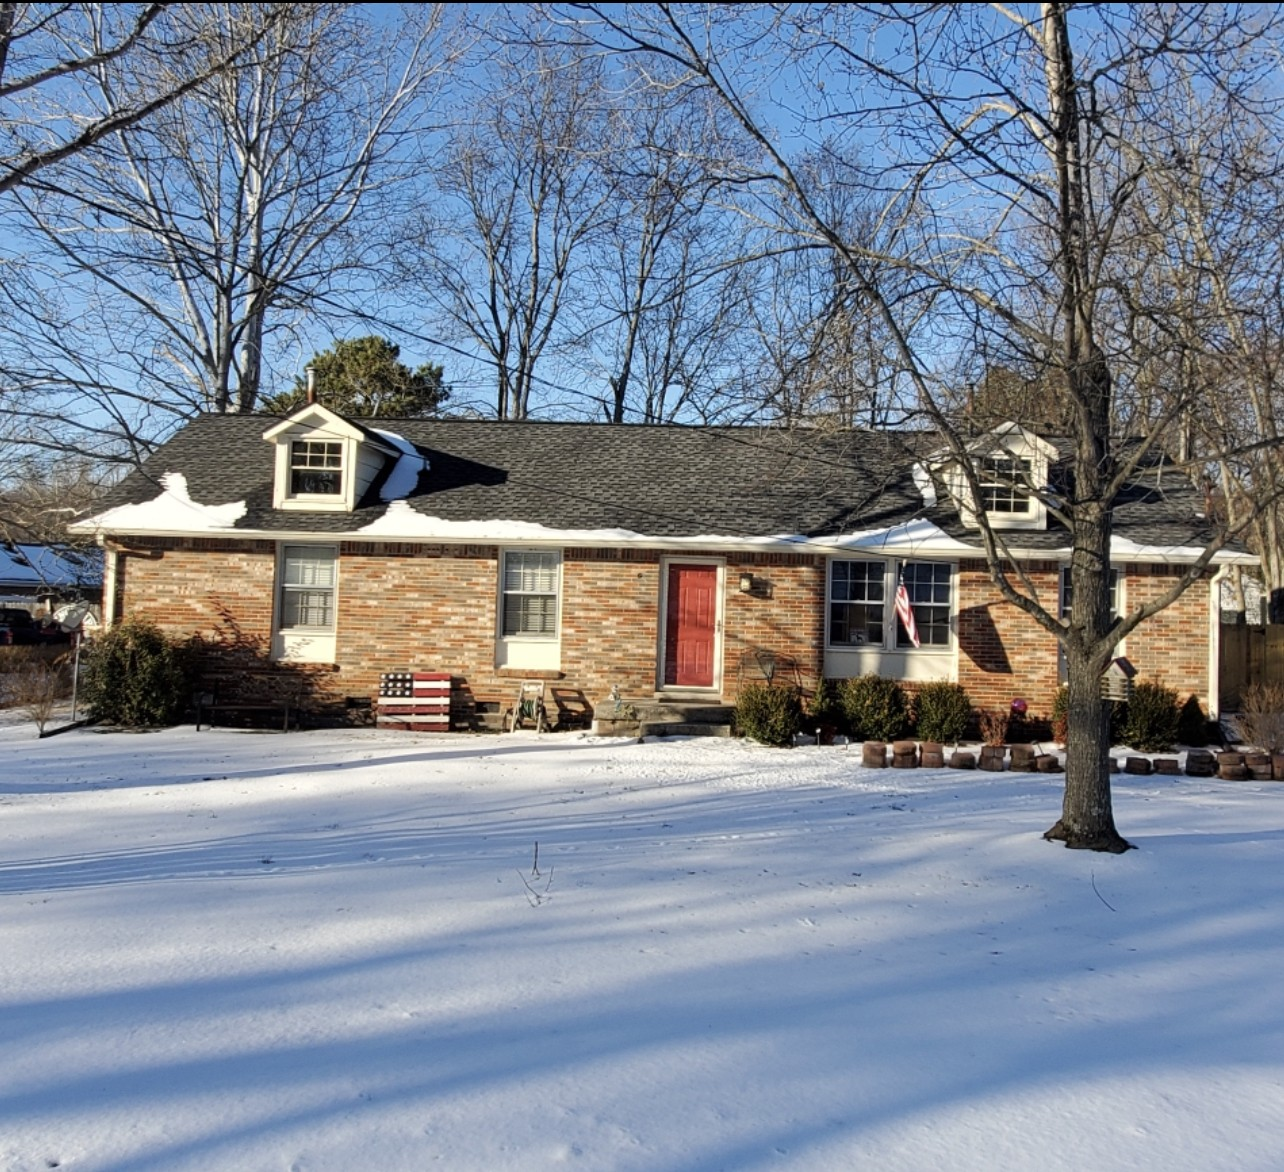 *Brick 3 Bdrm home with Fenced in Rear Yard* Pergola will remain with property* Original Hardwood* Kitchen has large Pantry! The storage building doesn't stay. As-Is Condition